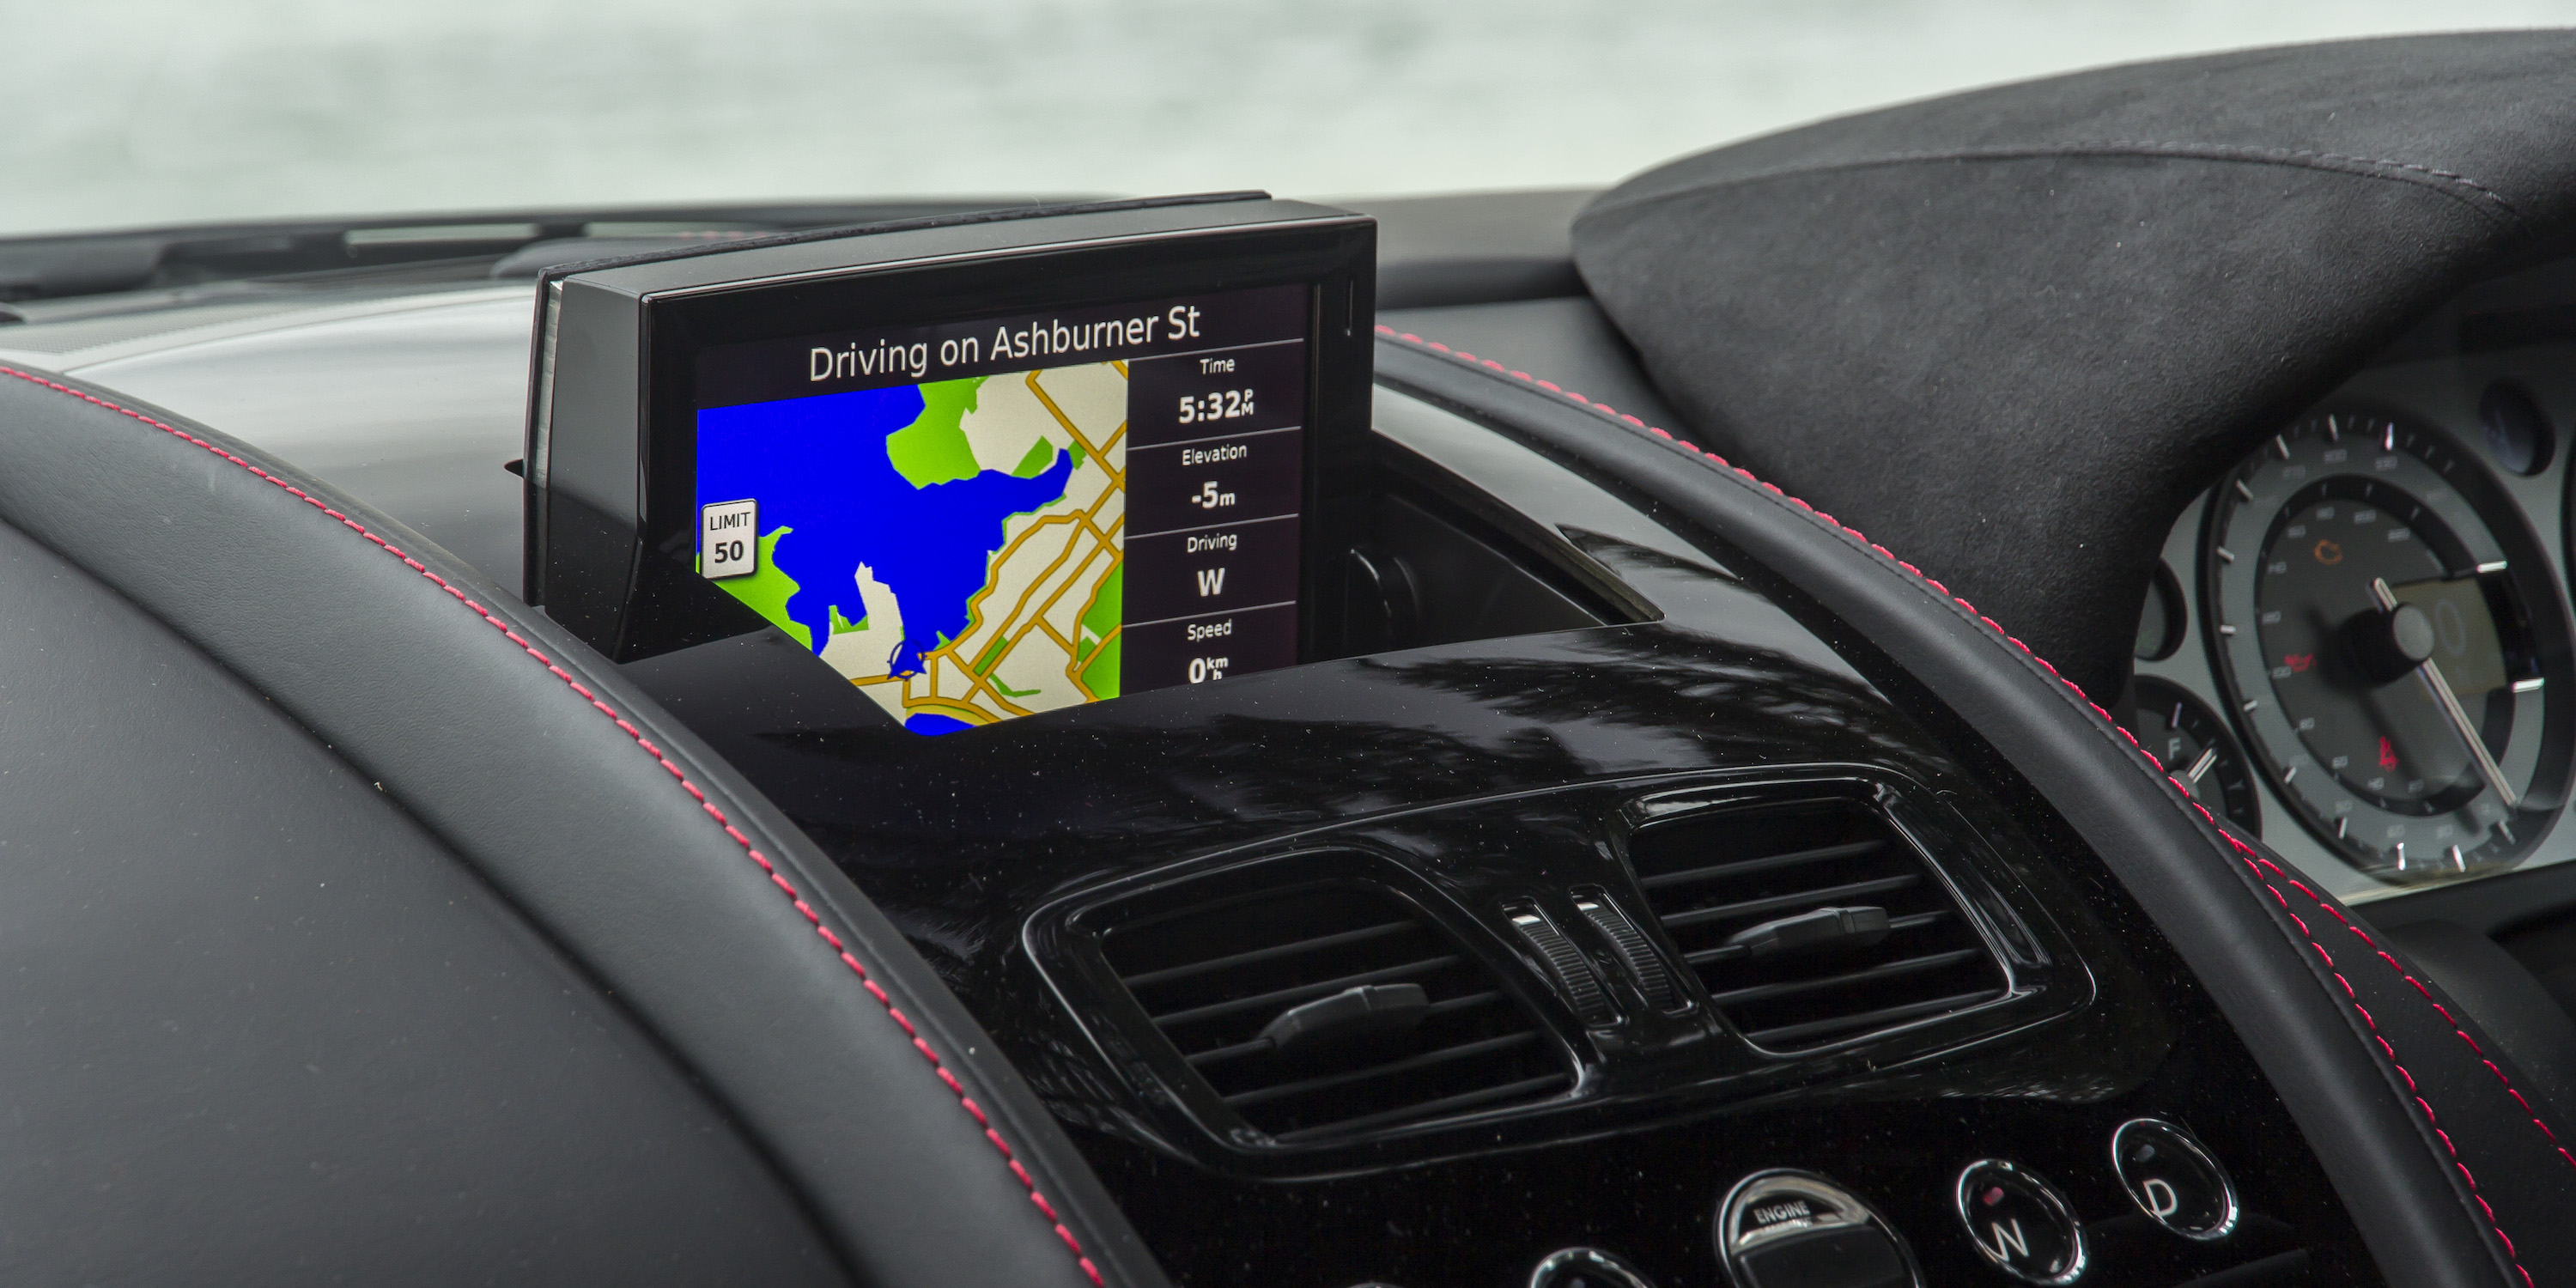 2016 Aston Martin Vantage Gt Head Unit (Photo 11 of 25)